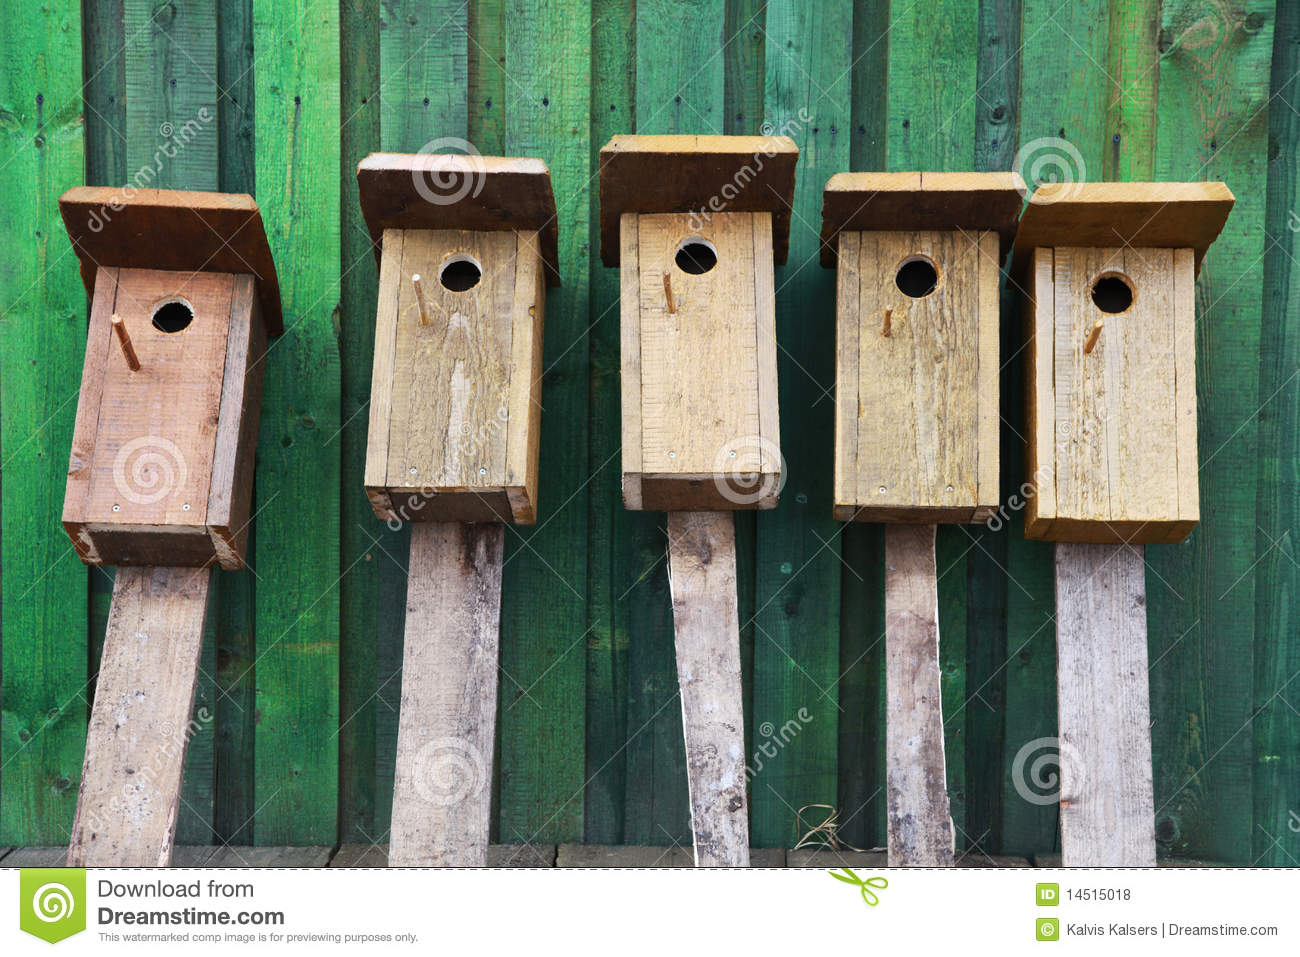 Birds houses stock photo  Image of plan, cage, high, build